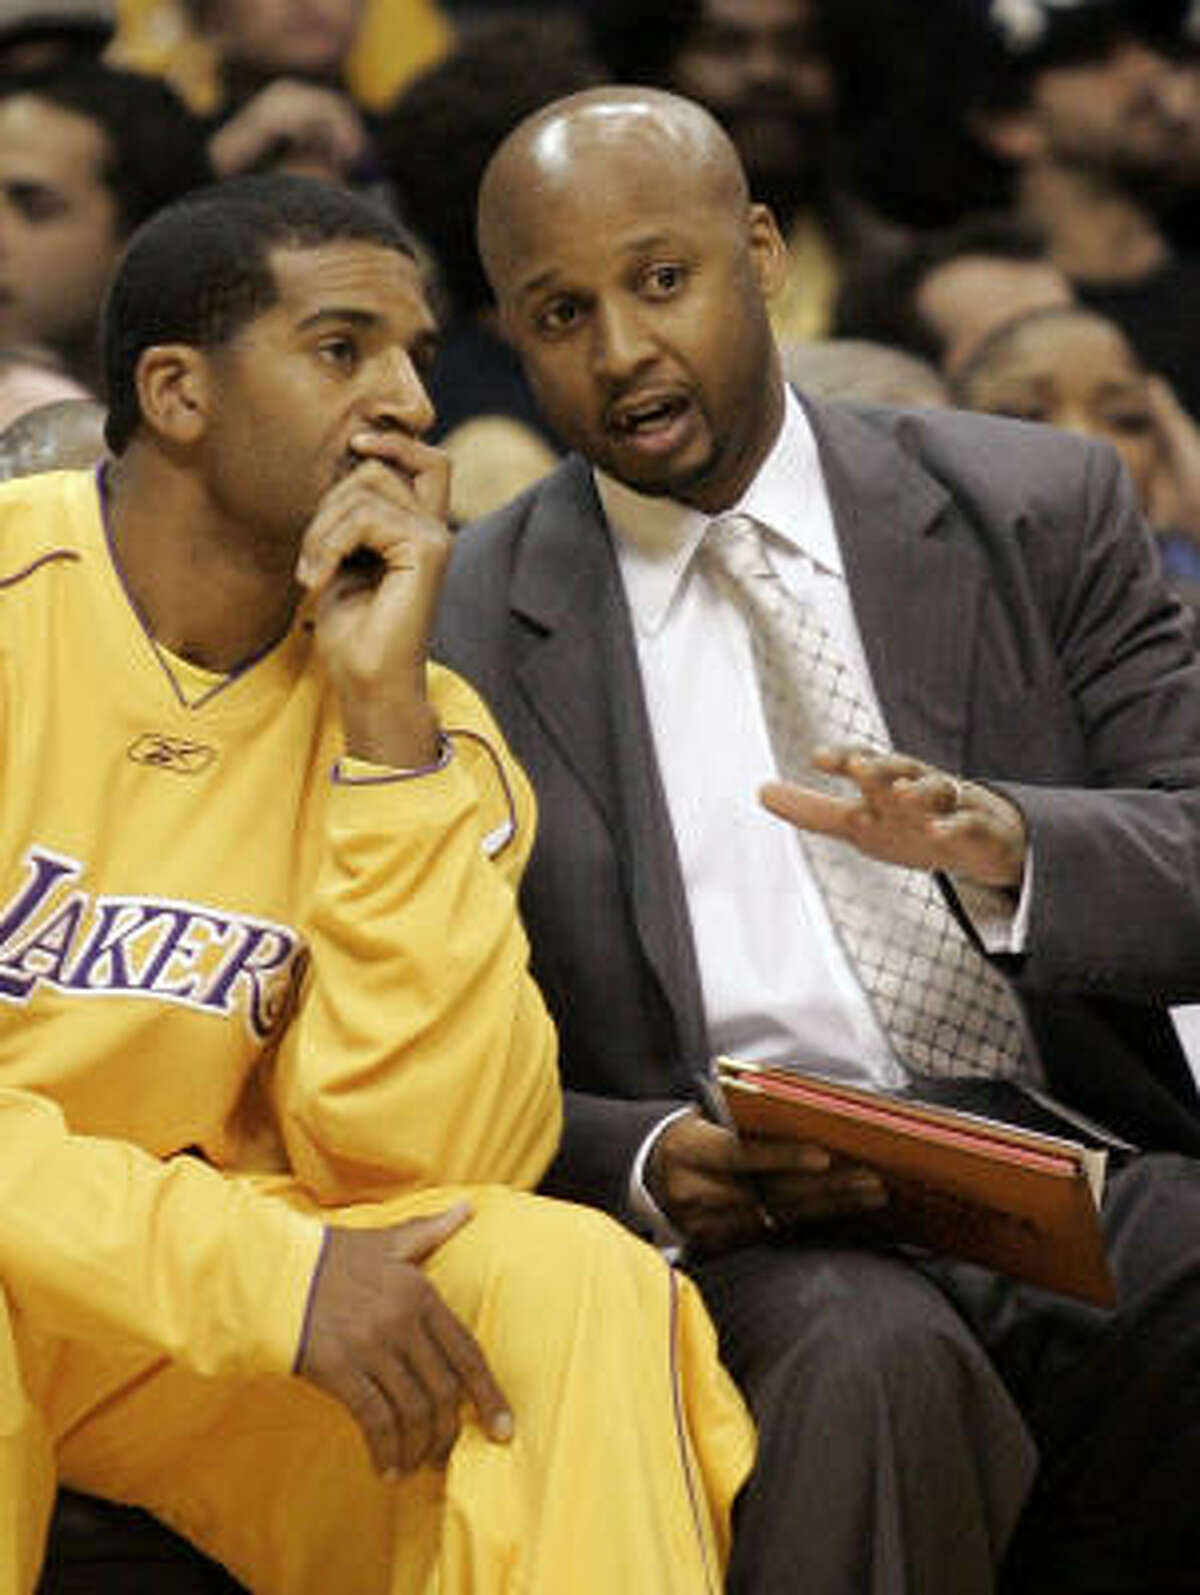 Has been an assistant coach with the Los Angeles Lakers since 2004-05 season. He was a journeyman pro, but won three NBA titles with the Lakers.